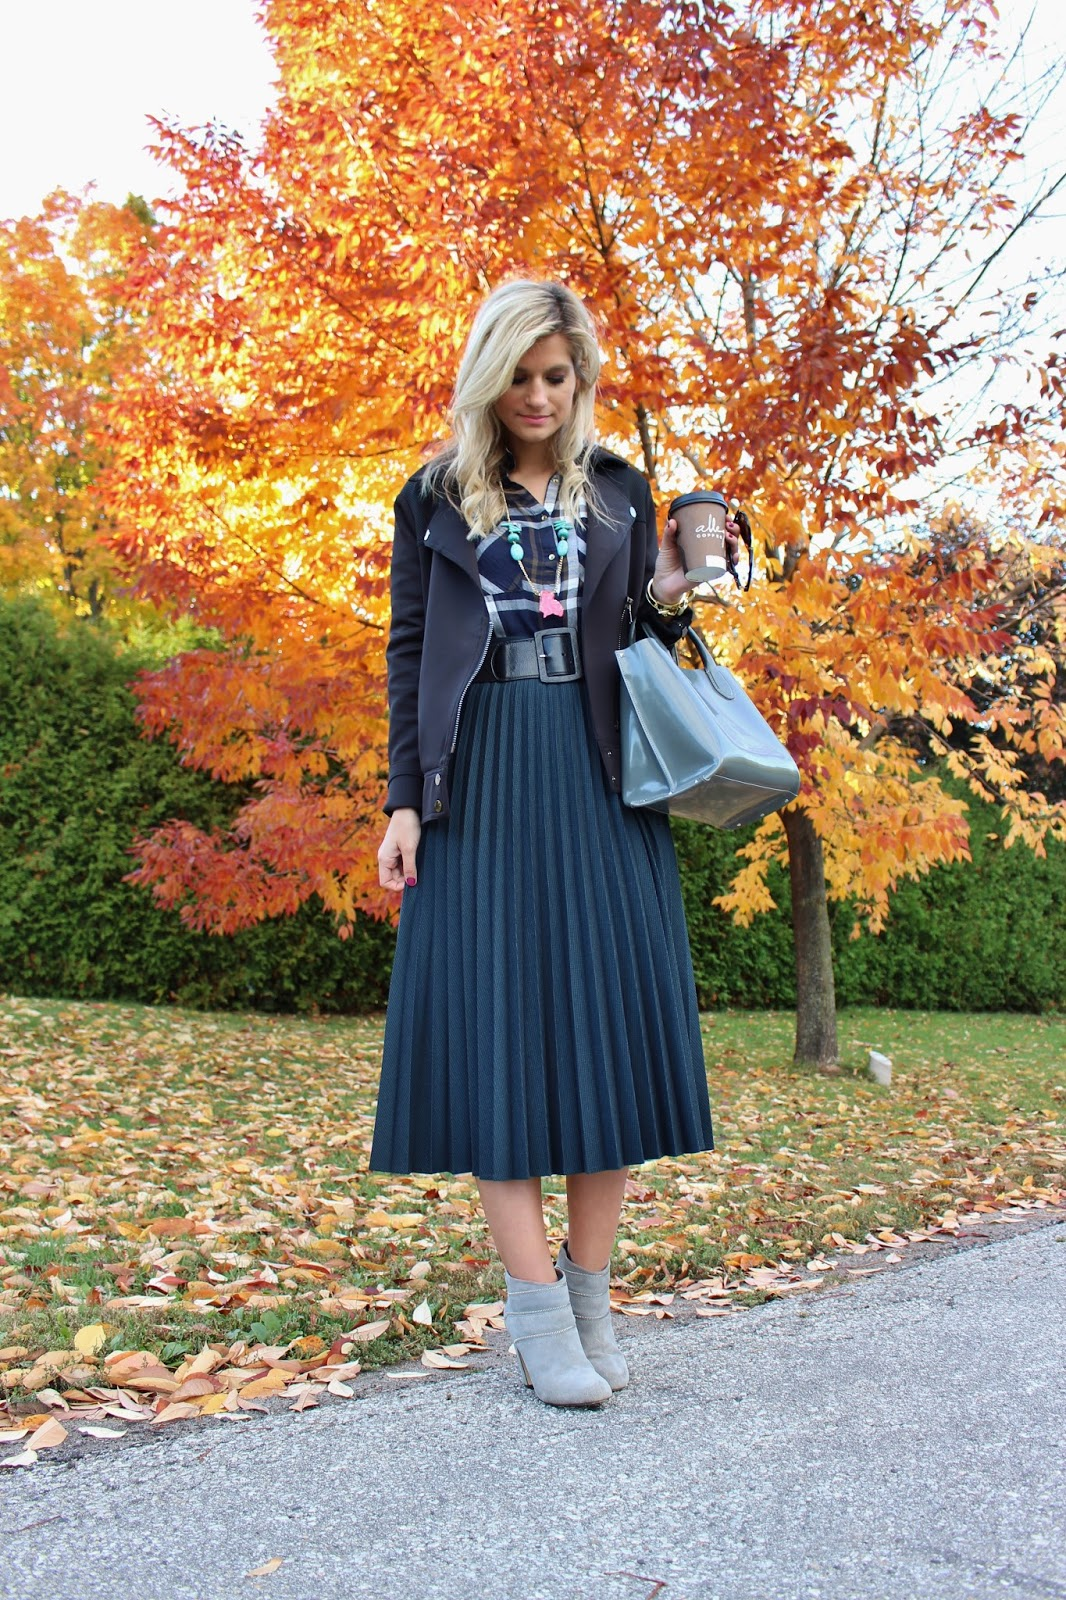 bijuleni- midi skirt, plaid blouse and jacket. Chicnbold necklace